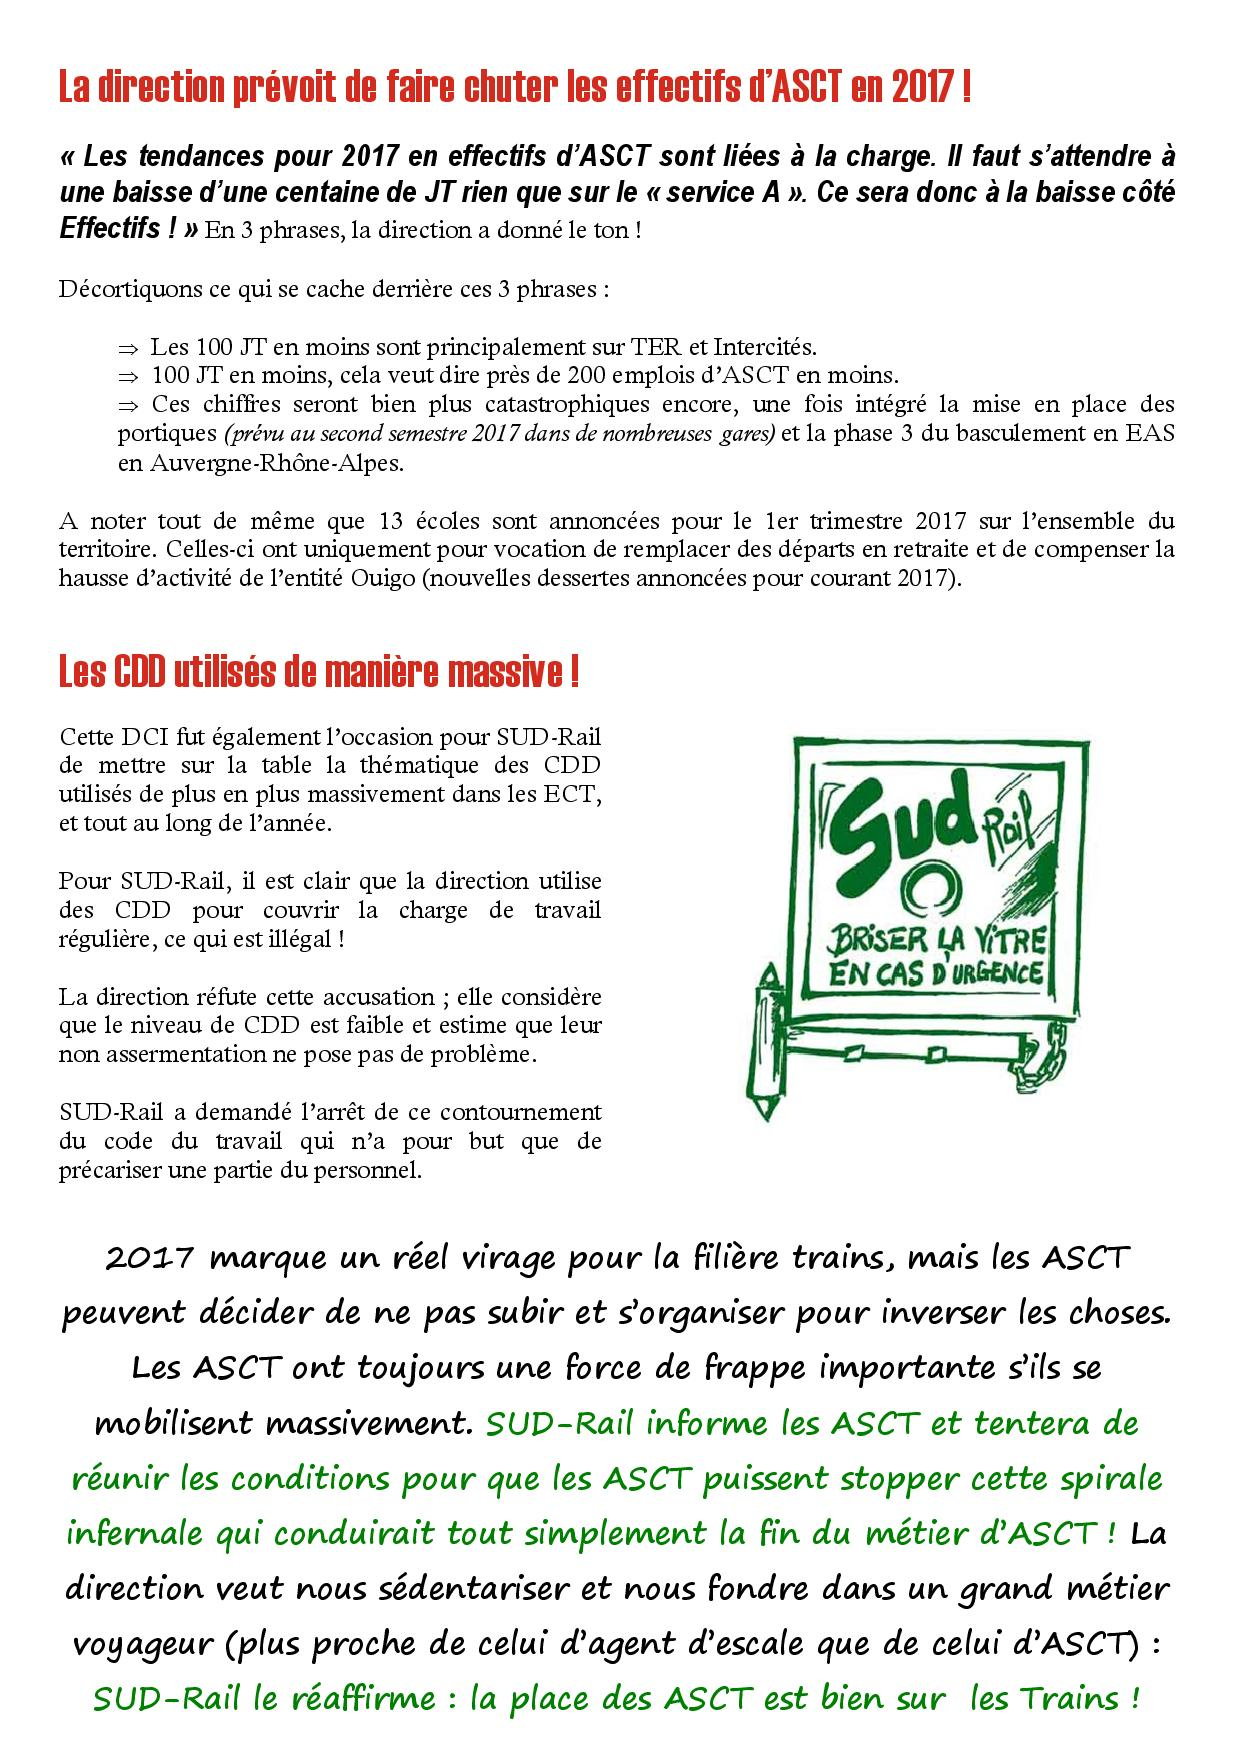 ect-effectifs-ect-dci-25-10-2016-page-002